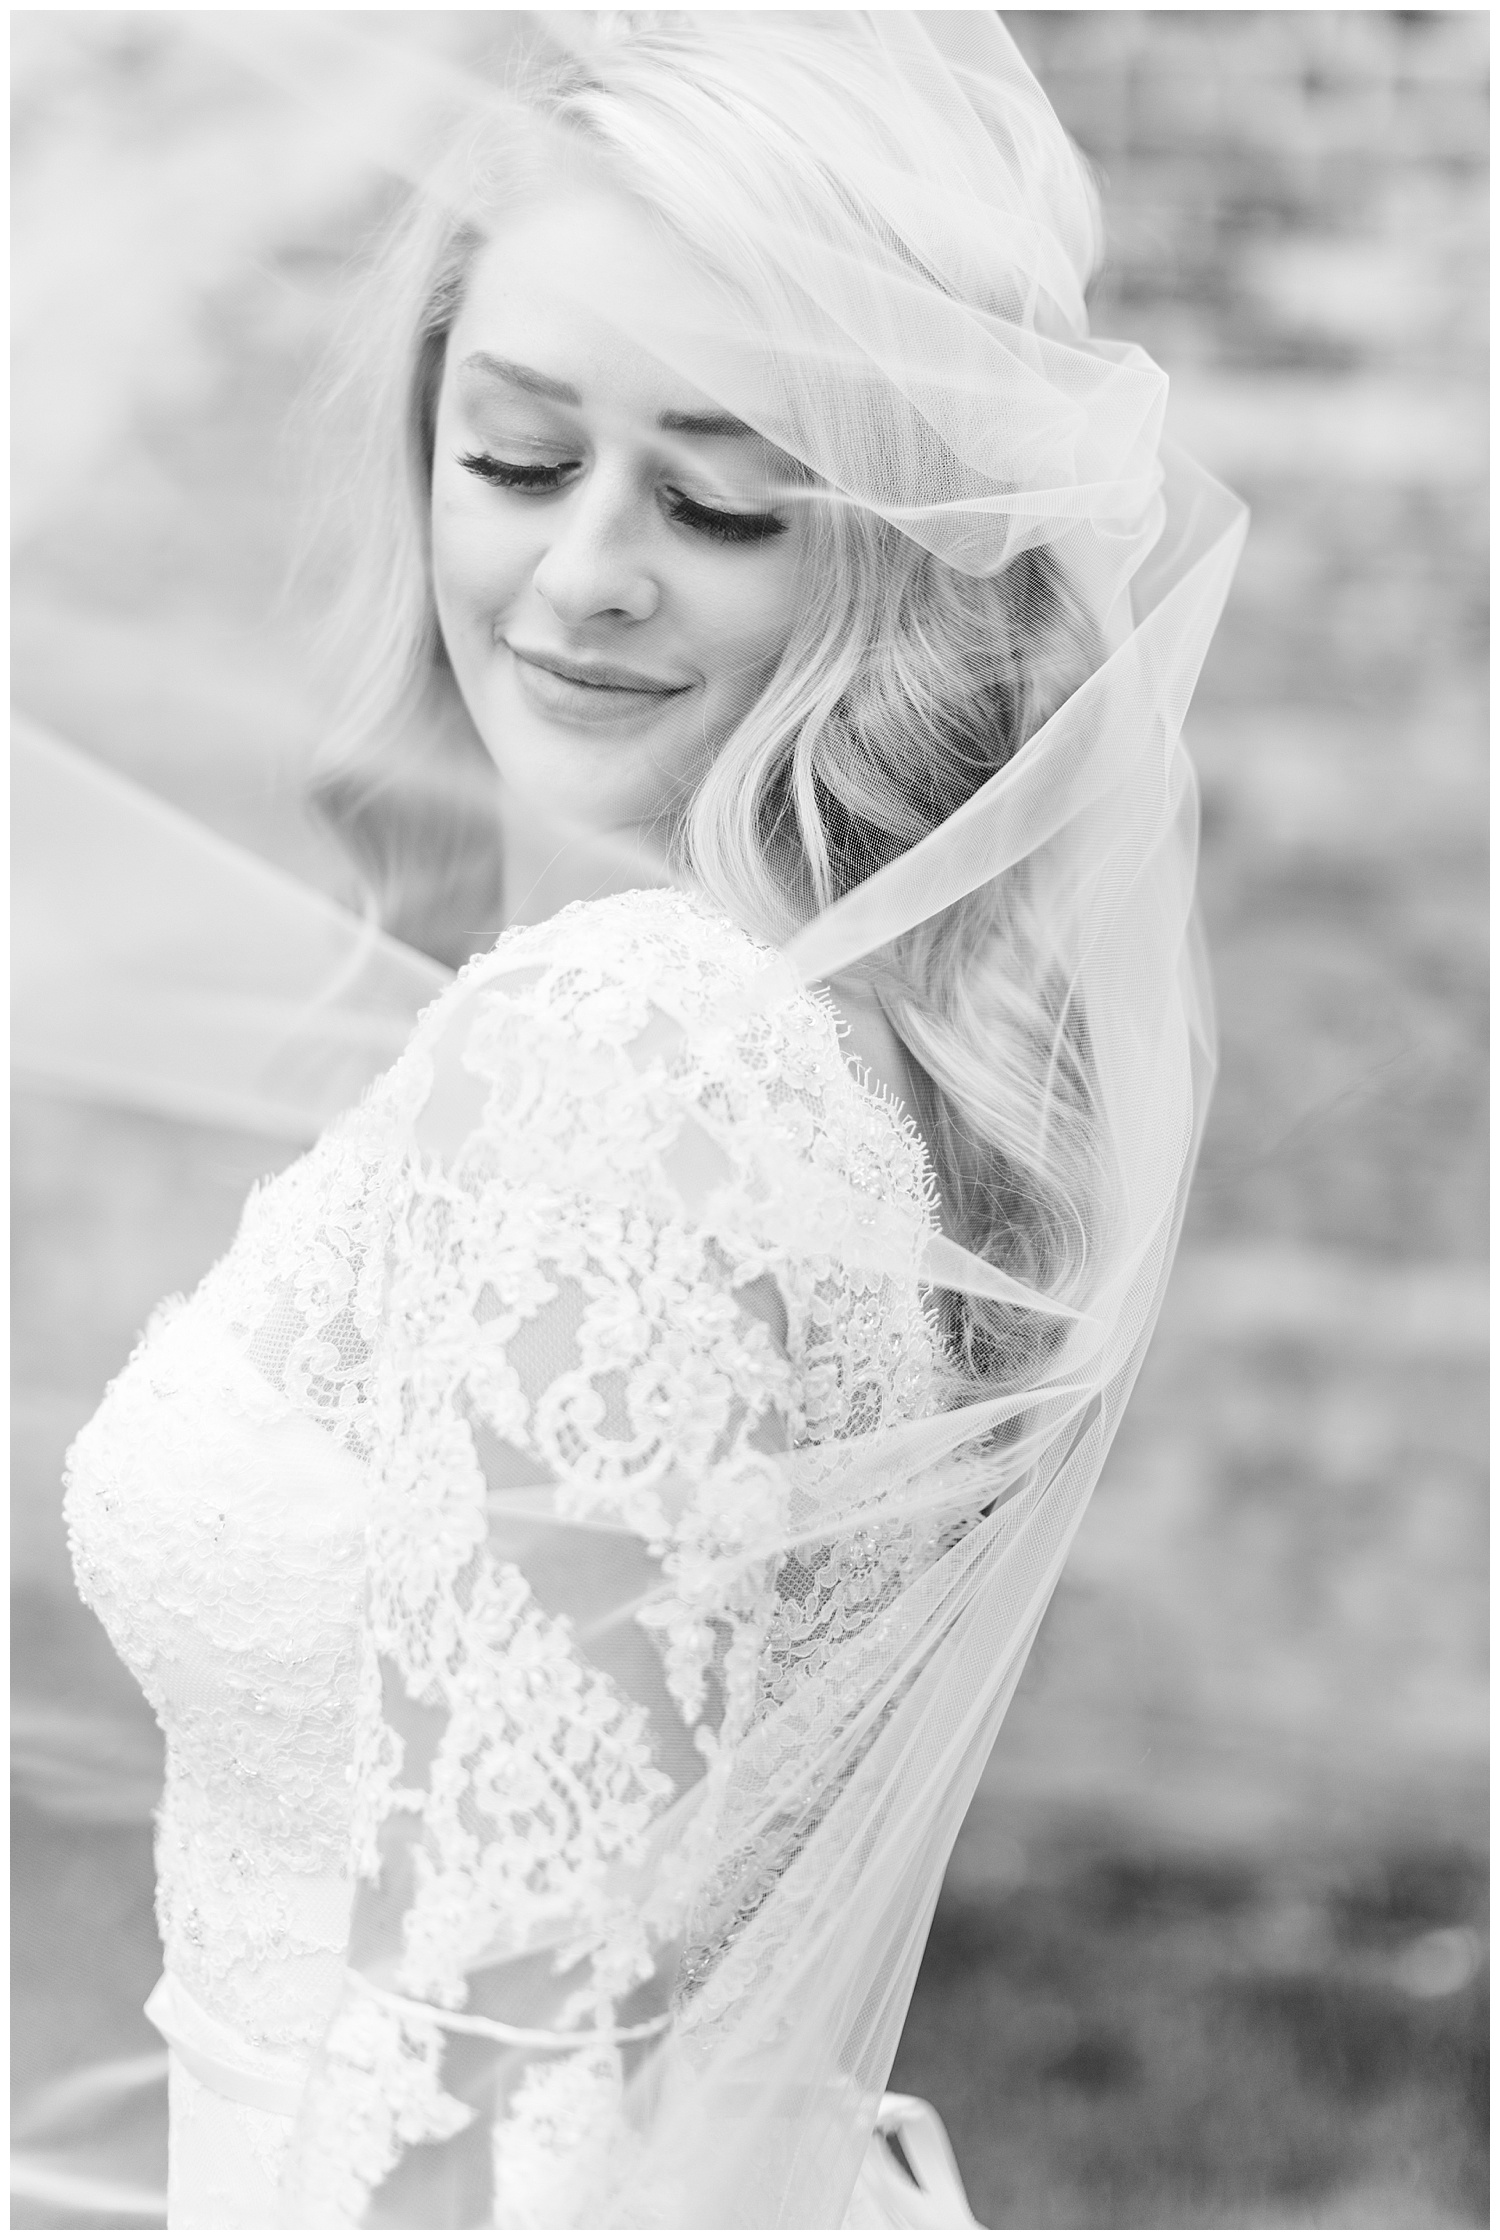 Beautiful bride looks down as her veil blows in the wind | CB Studio